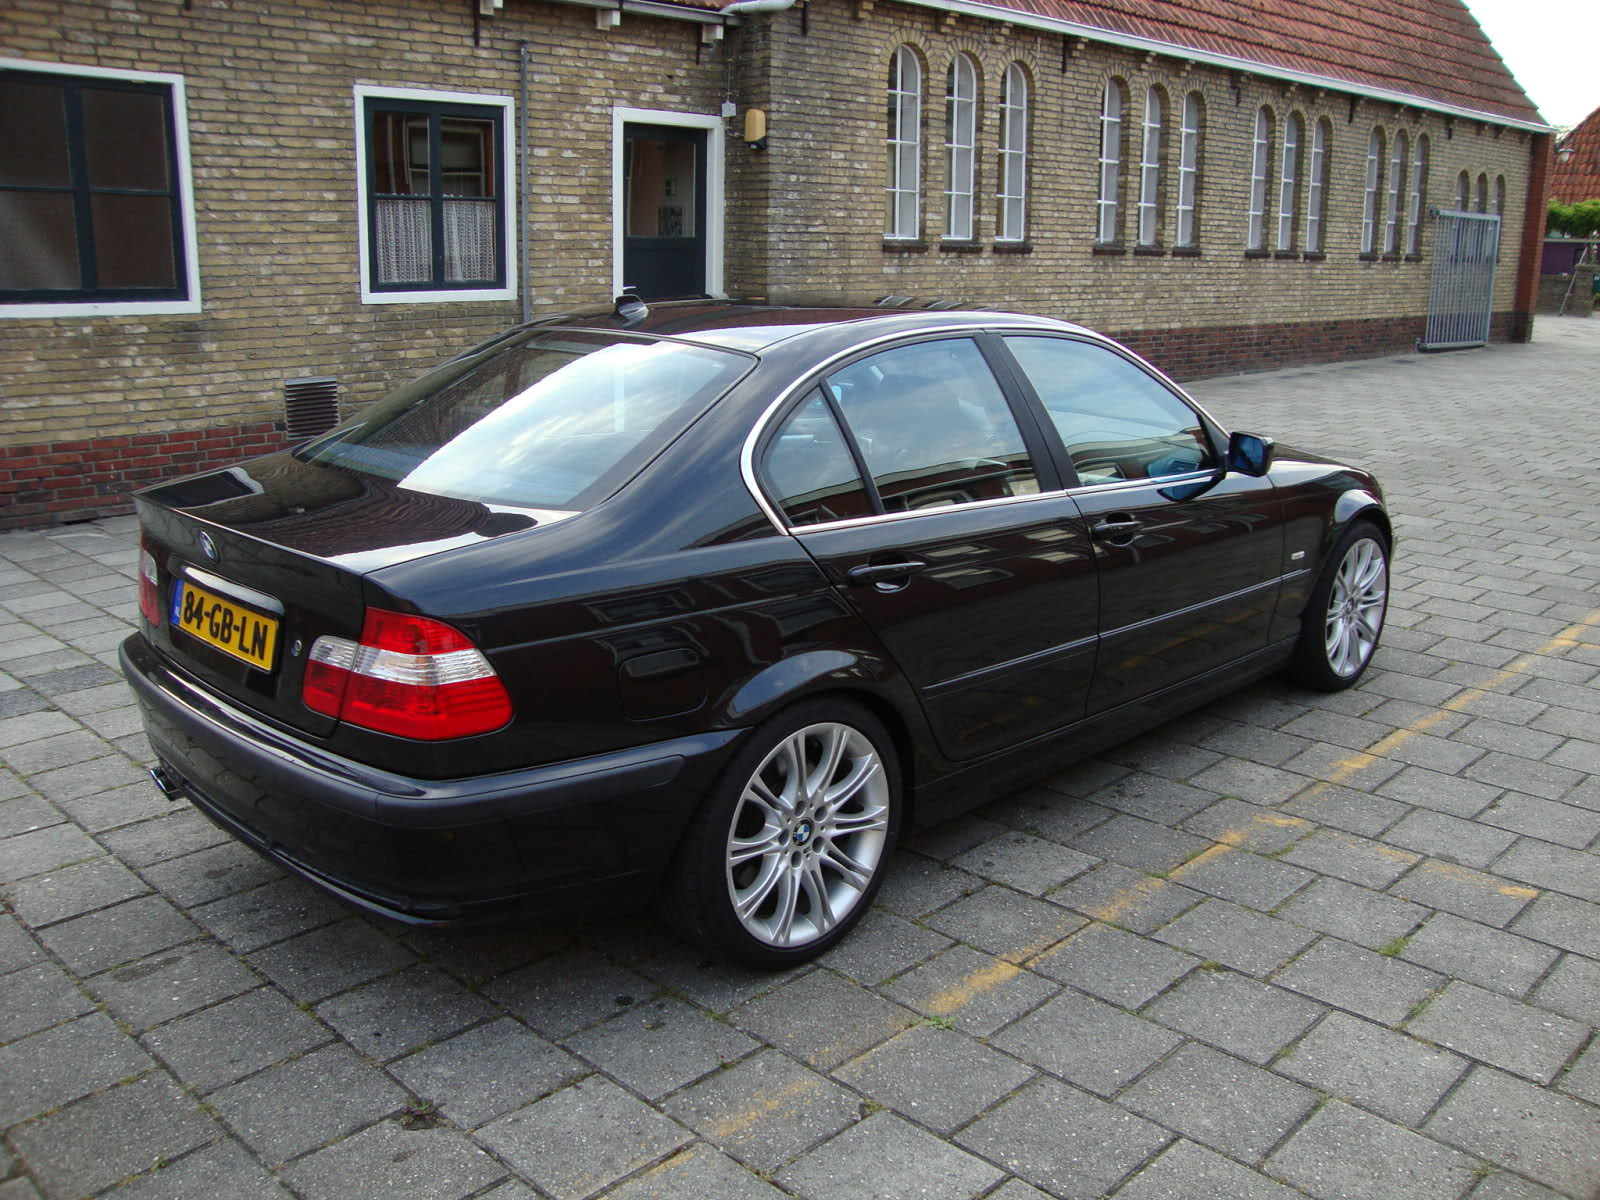 Bmw 330i 2000 Review Amazing Pictures And Images Look